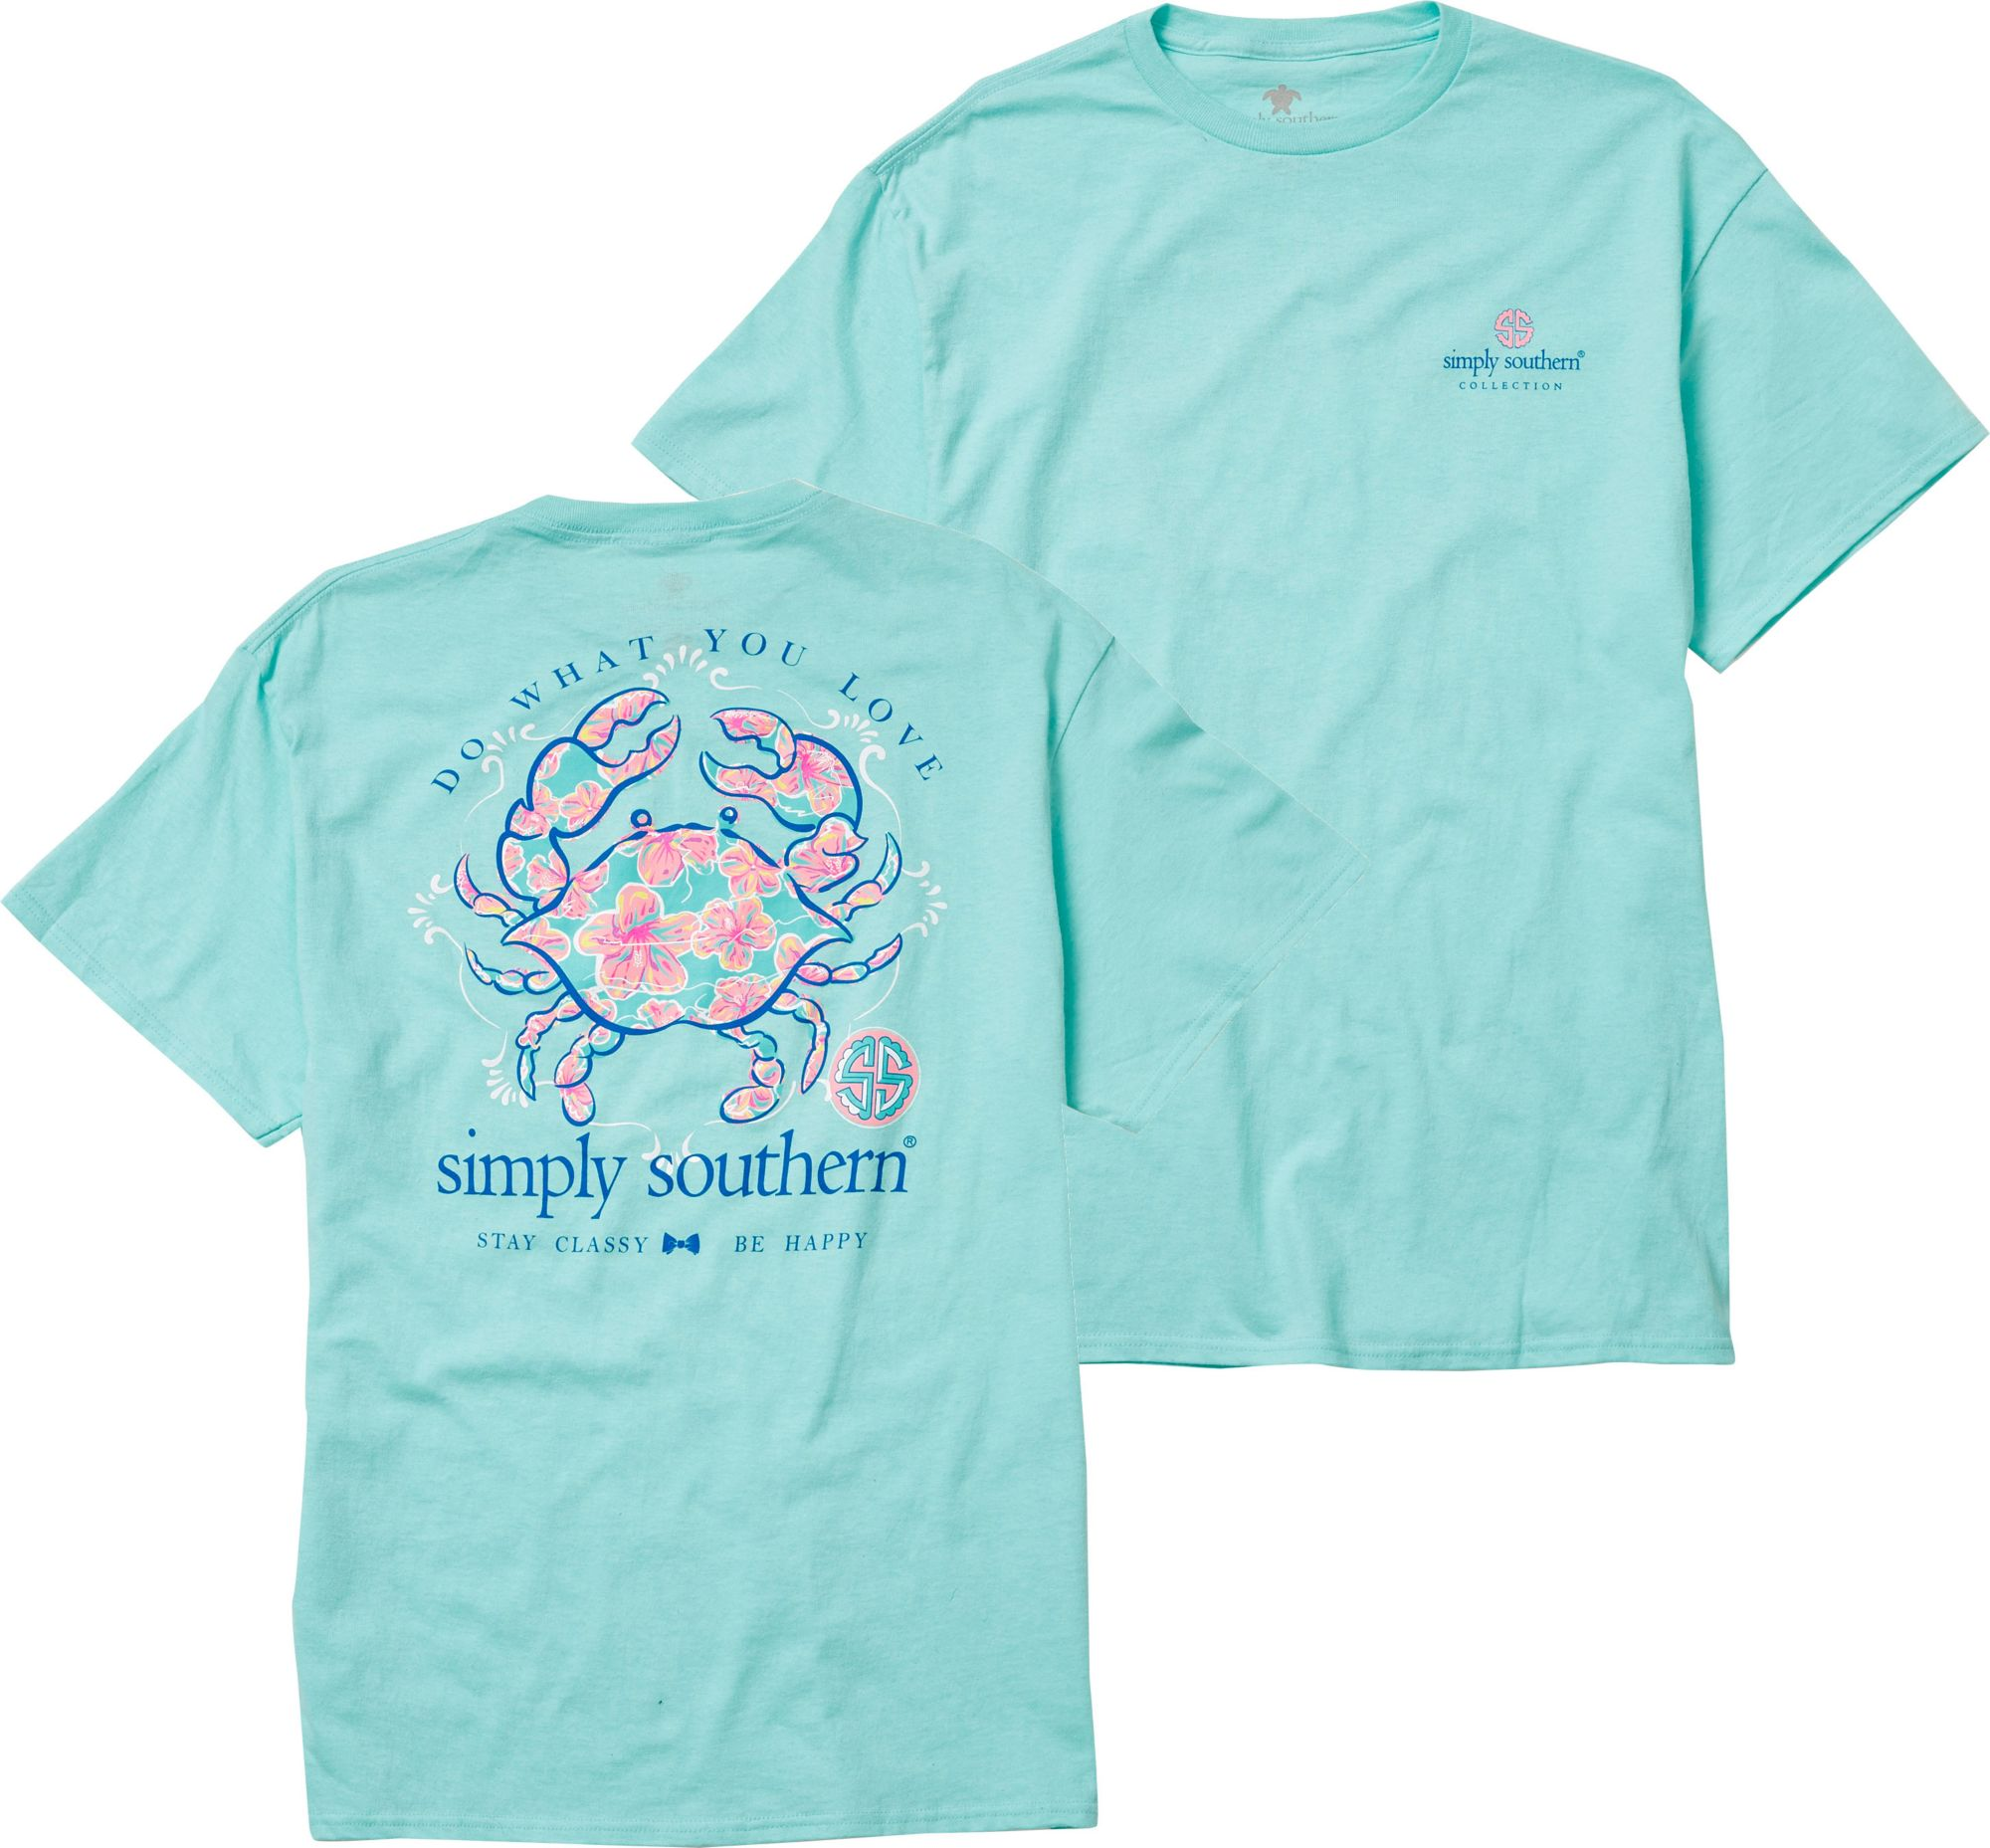 t all shirt southern by shirts nature uware c comforter y tees comfort